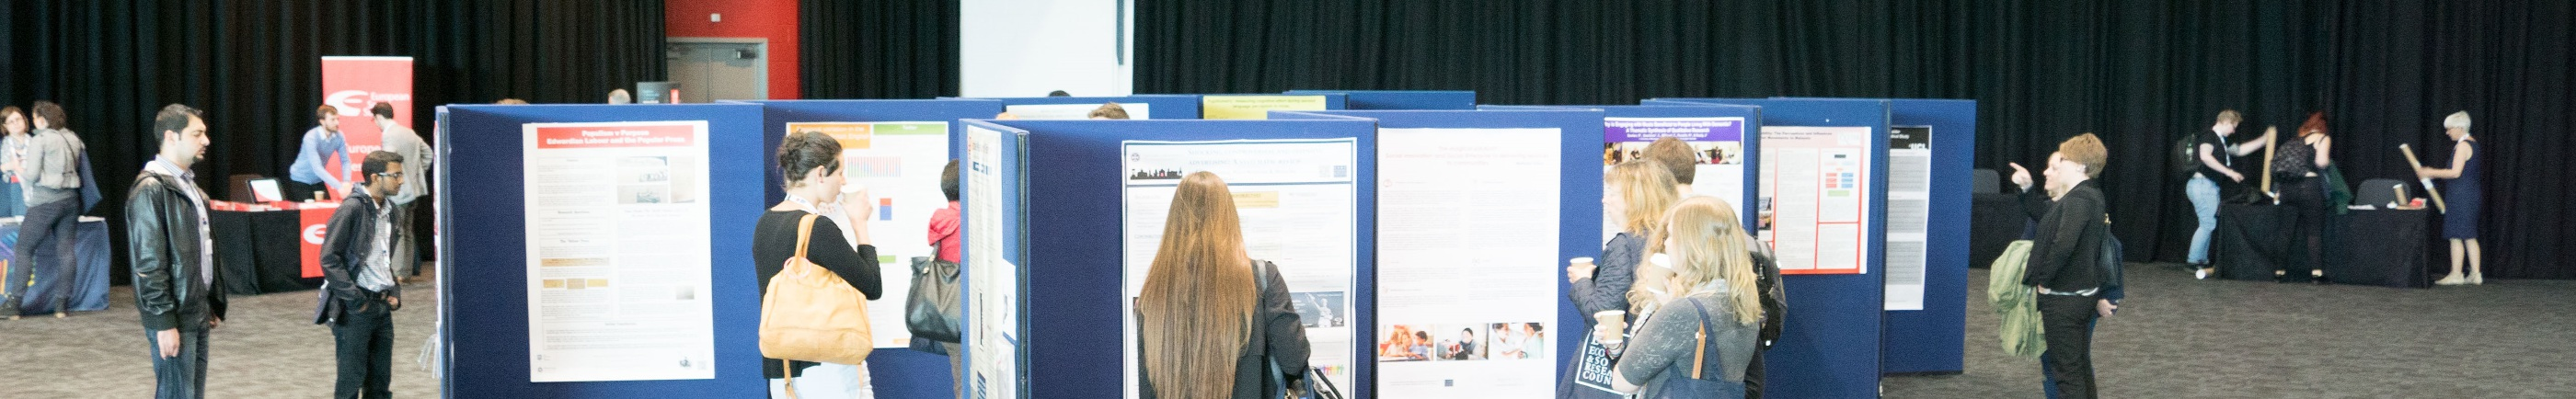 students looking at exhibition of posters